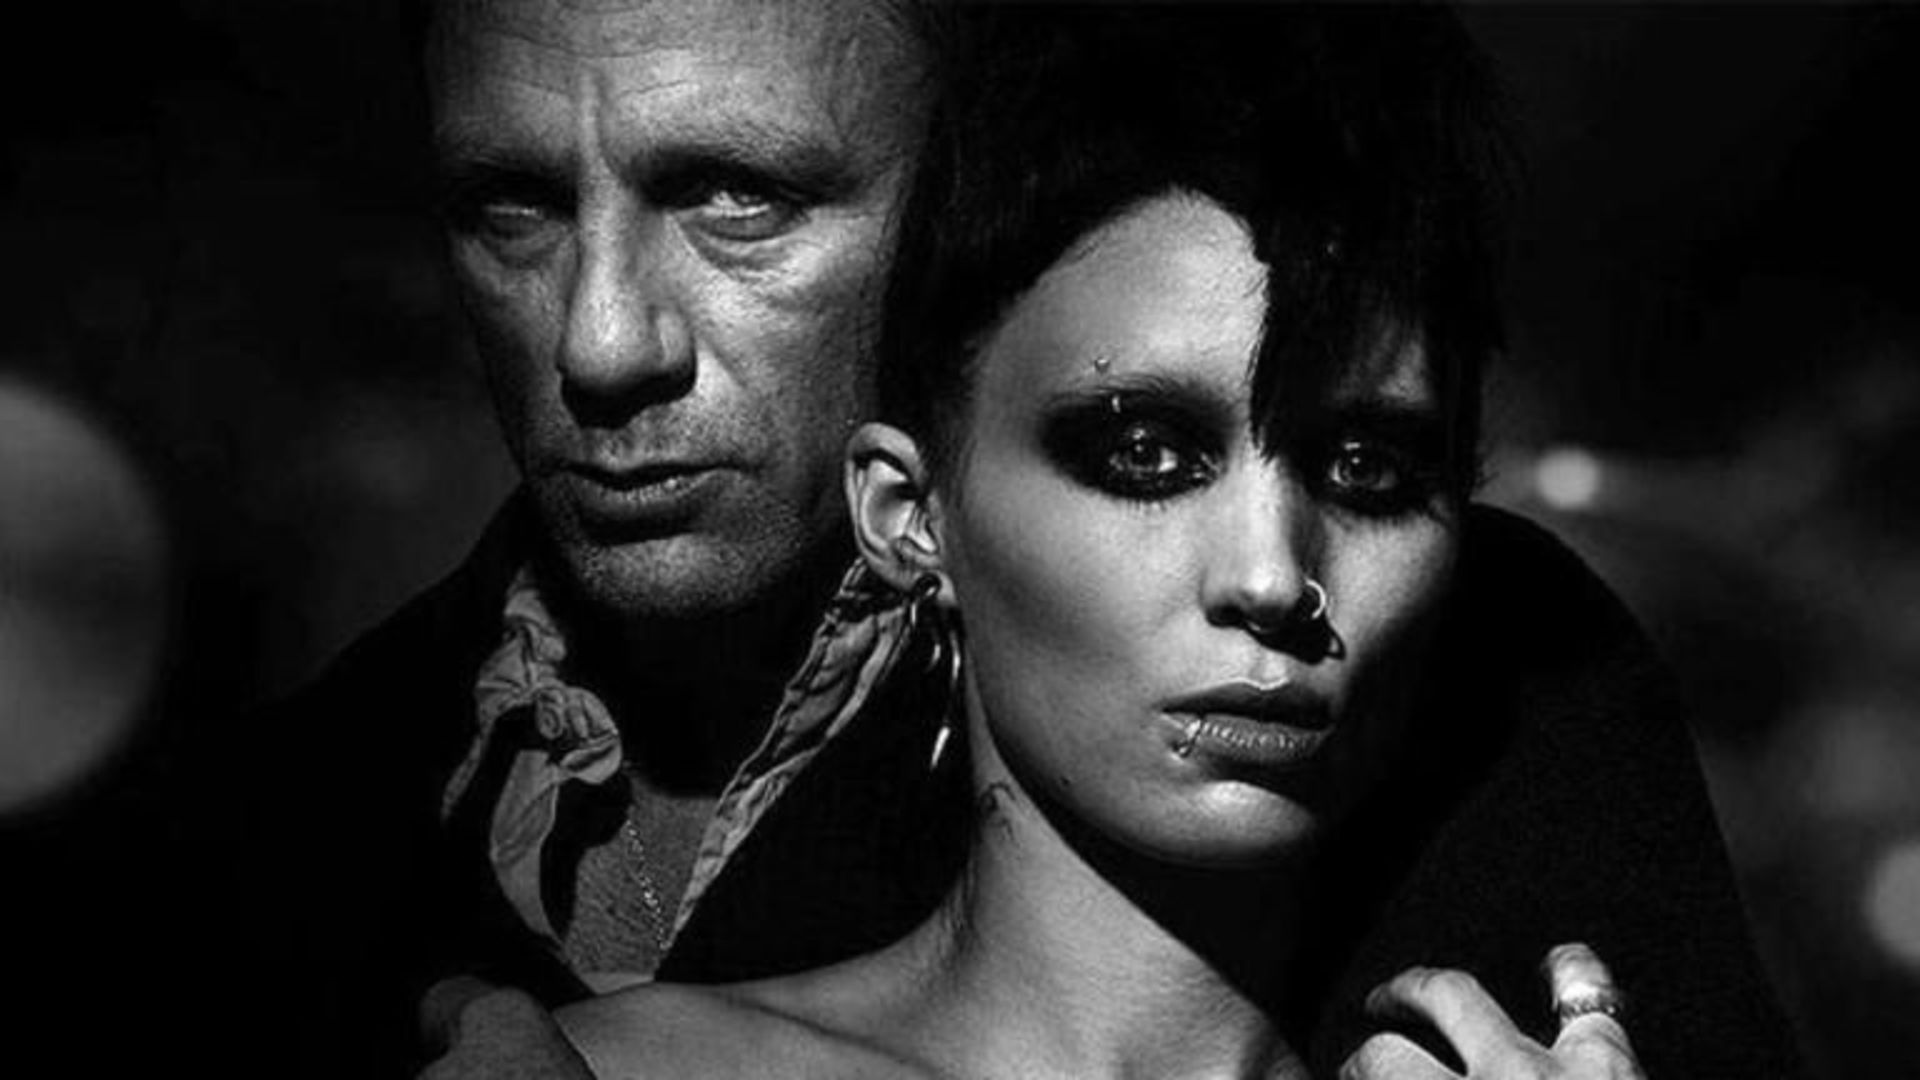 'The Girl With the Dragon Tattoo' wordt serie op Amazon Prime